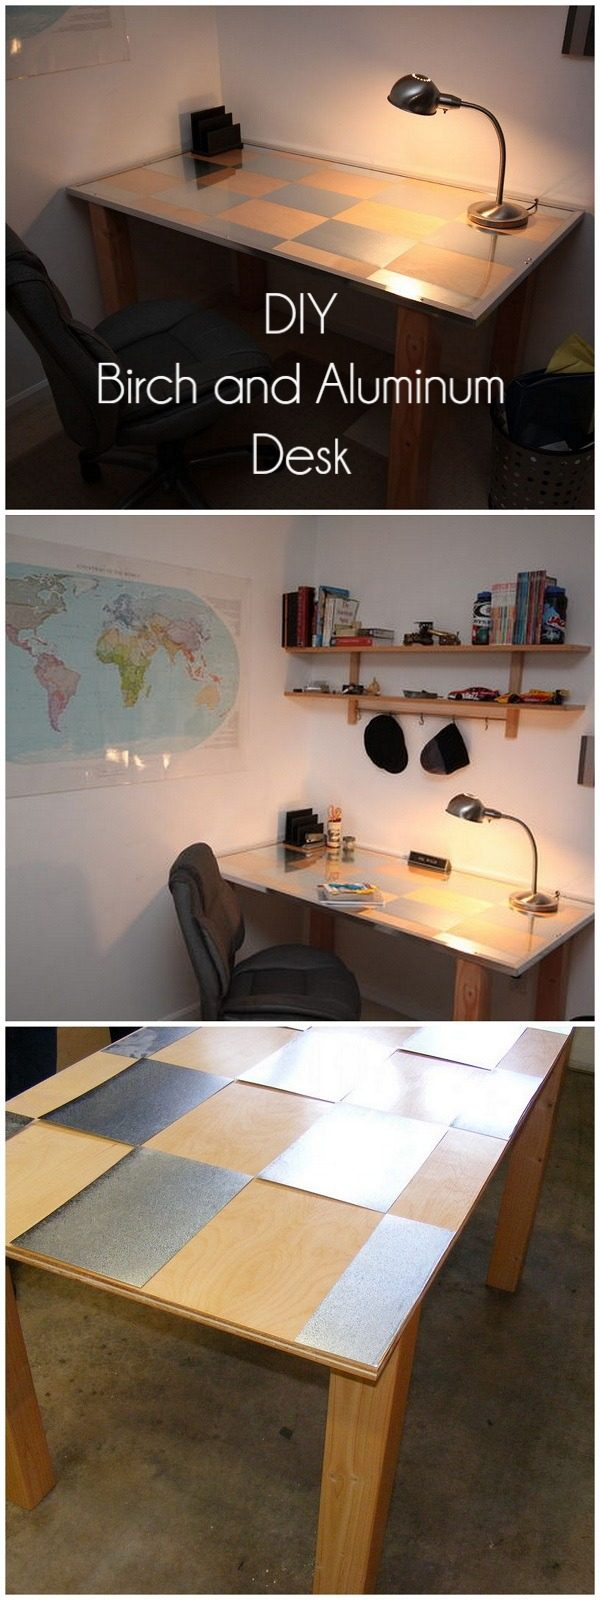 Check out this idea for a #DIY birch and aluminum desk. Looks easy enough! #HomeDecorIdeas